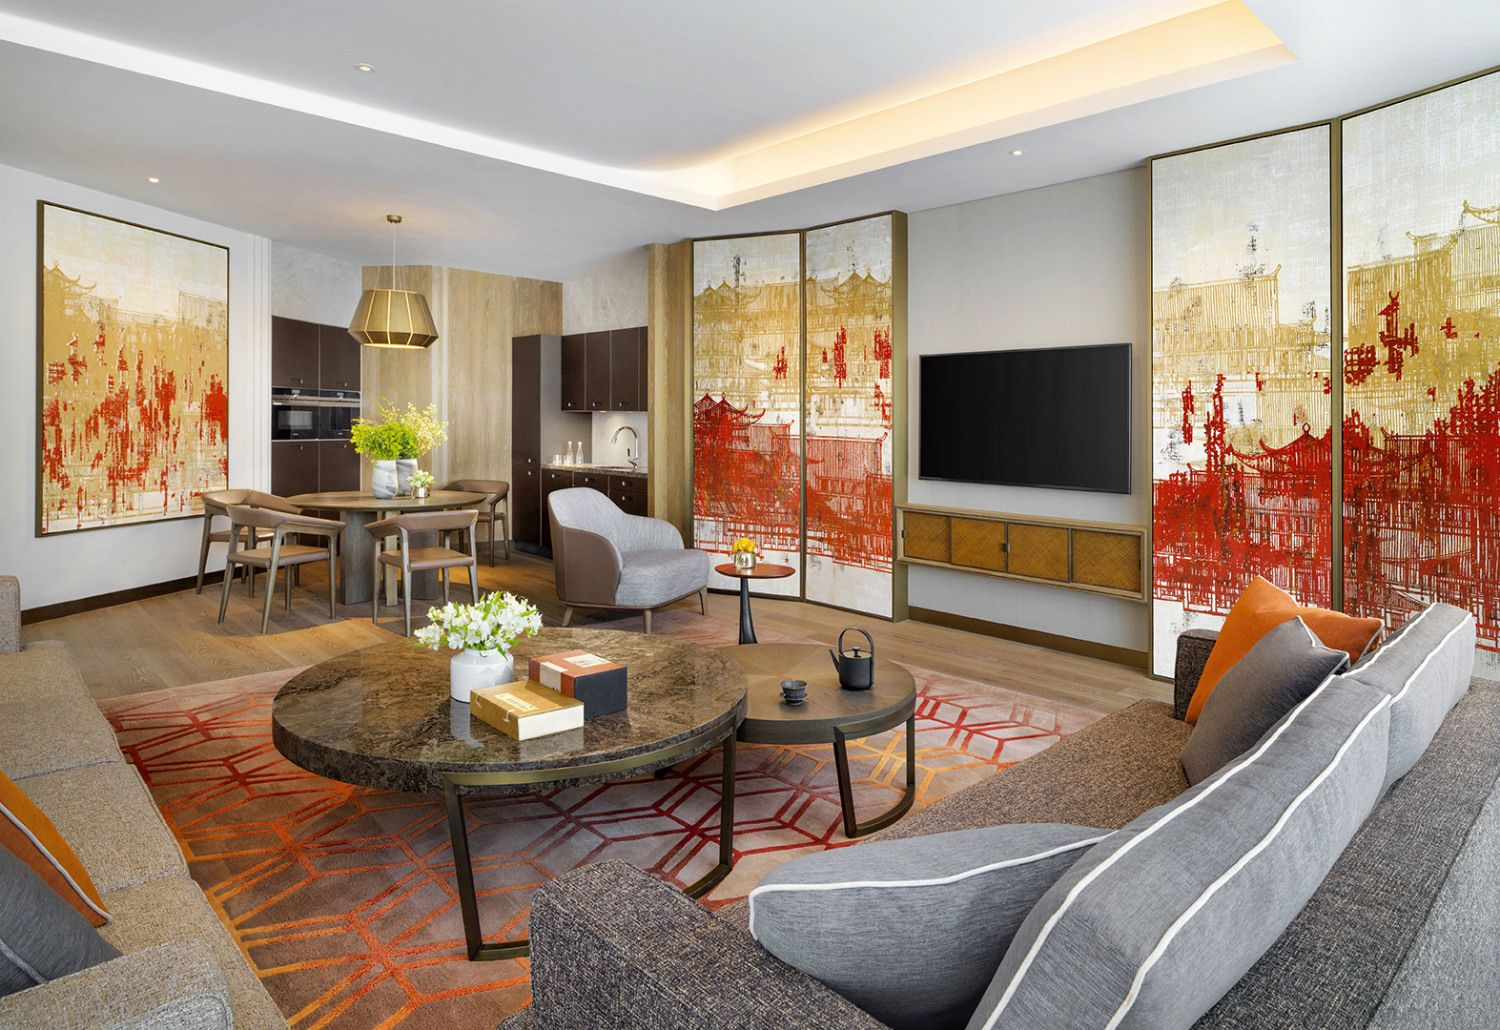 What Does Luxury Mean To A Hotel Designer?